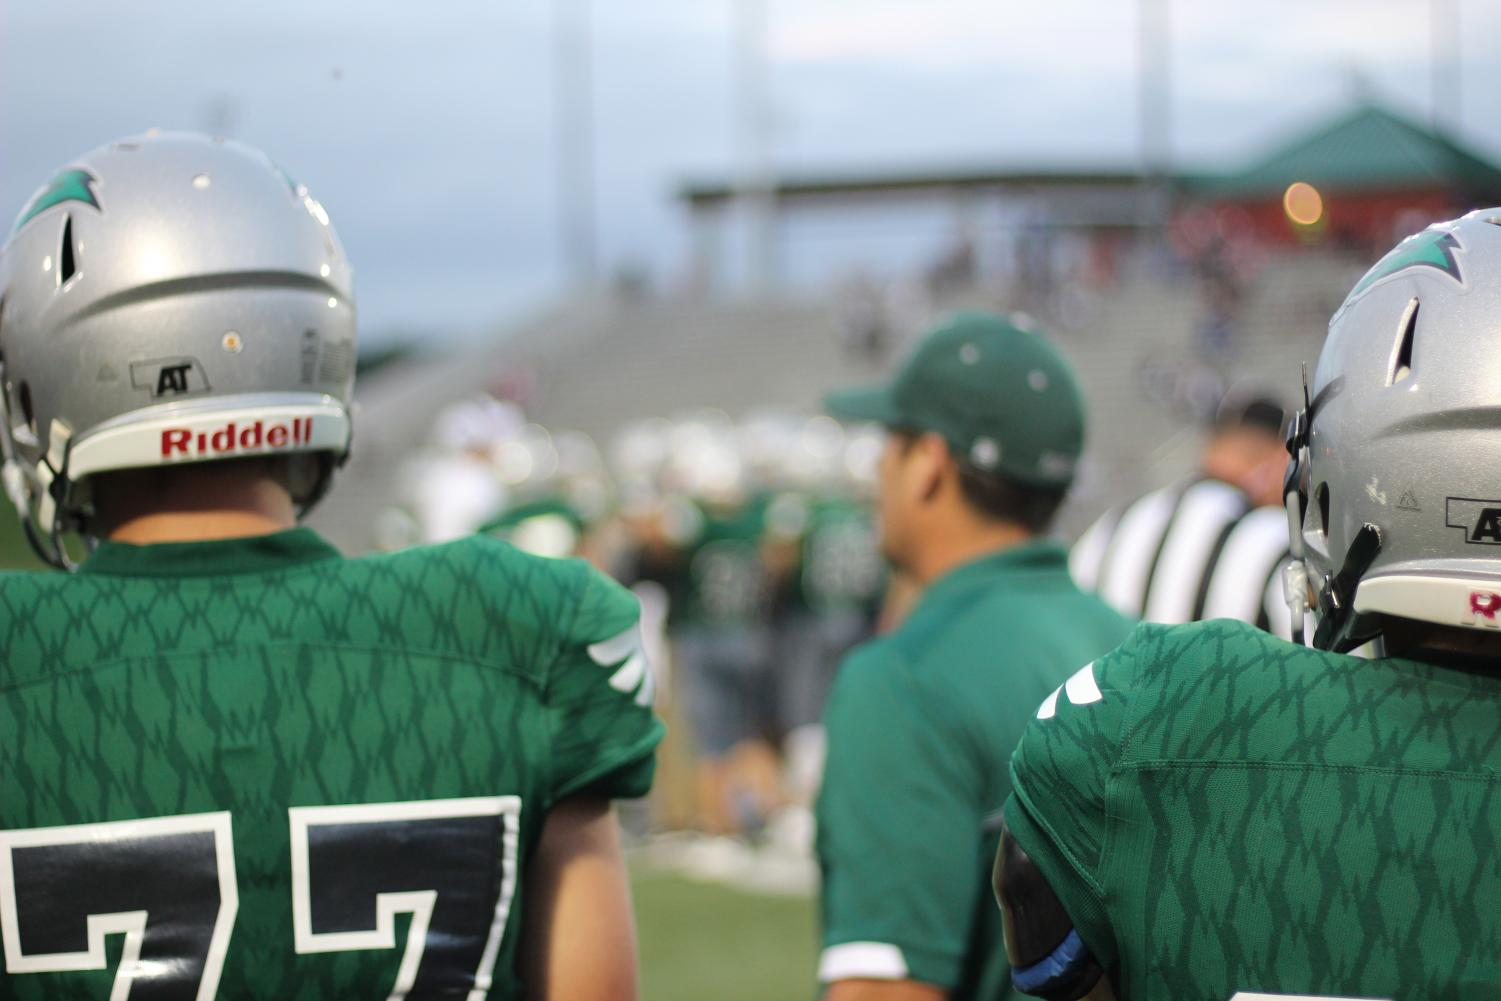 The LSW varsity football team plays Lincoln Southeast Friday, September 6. The Hawks are coming off a 29-0 win against Lincoln North Star last week.